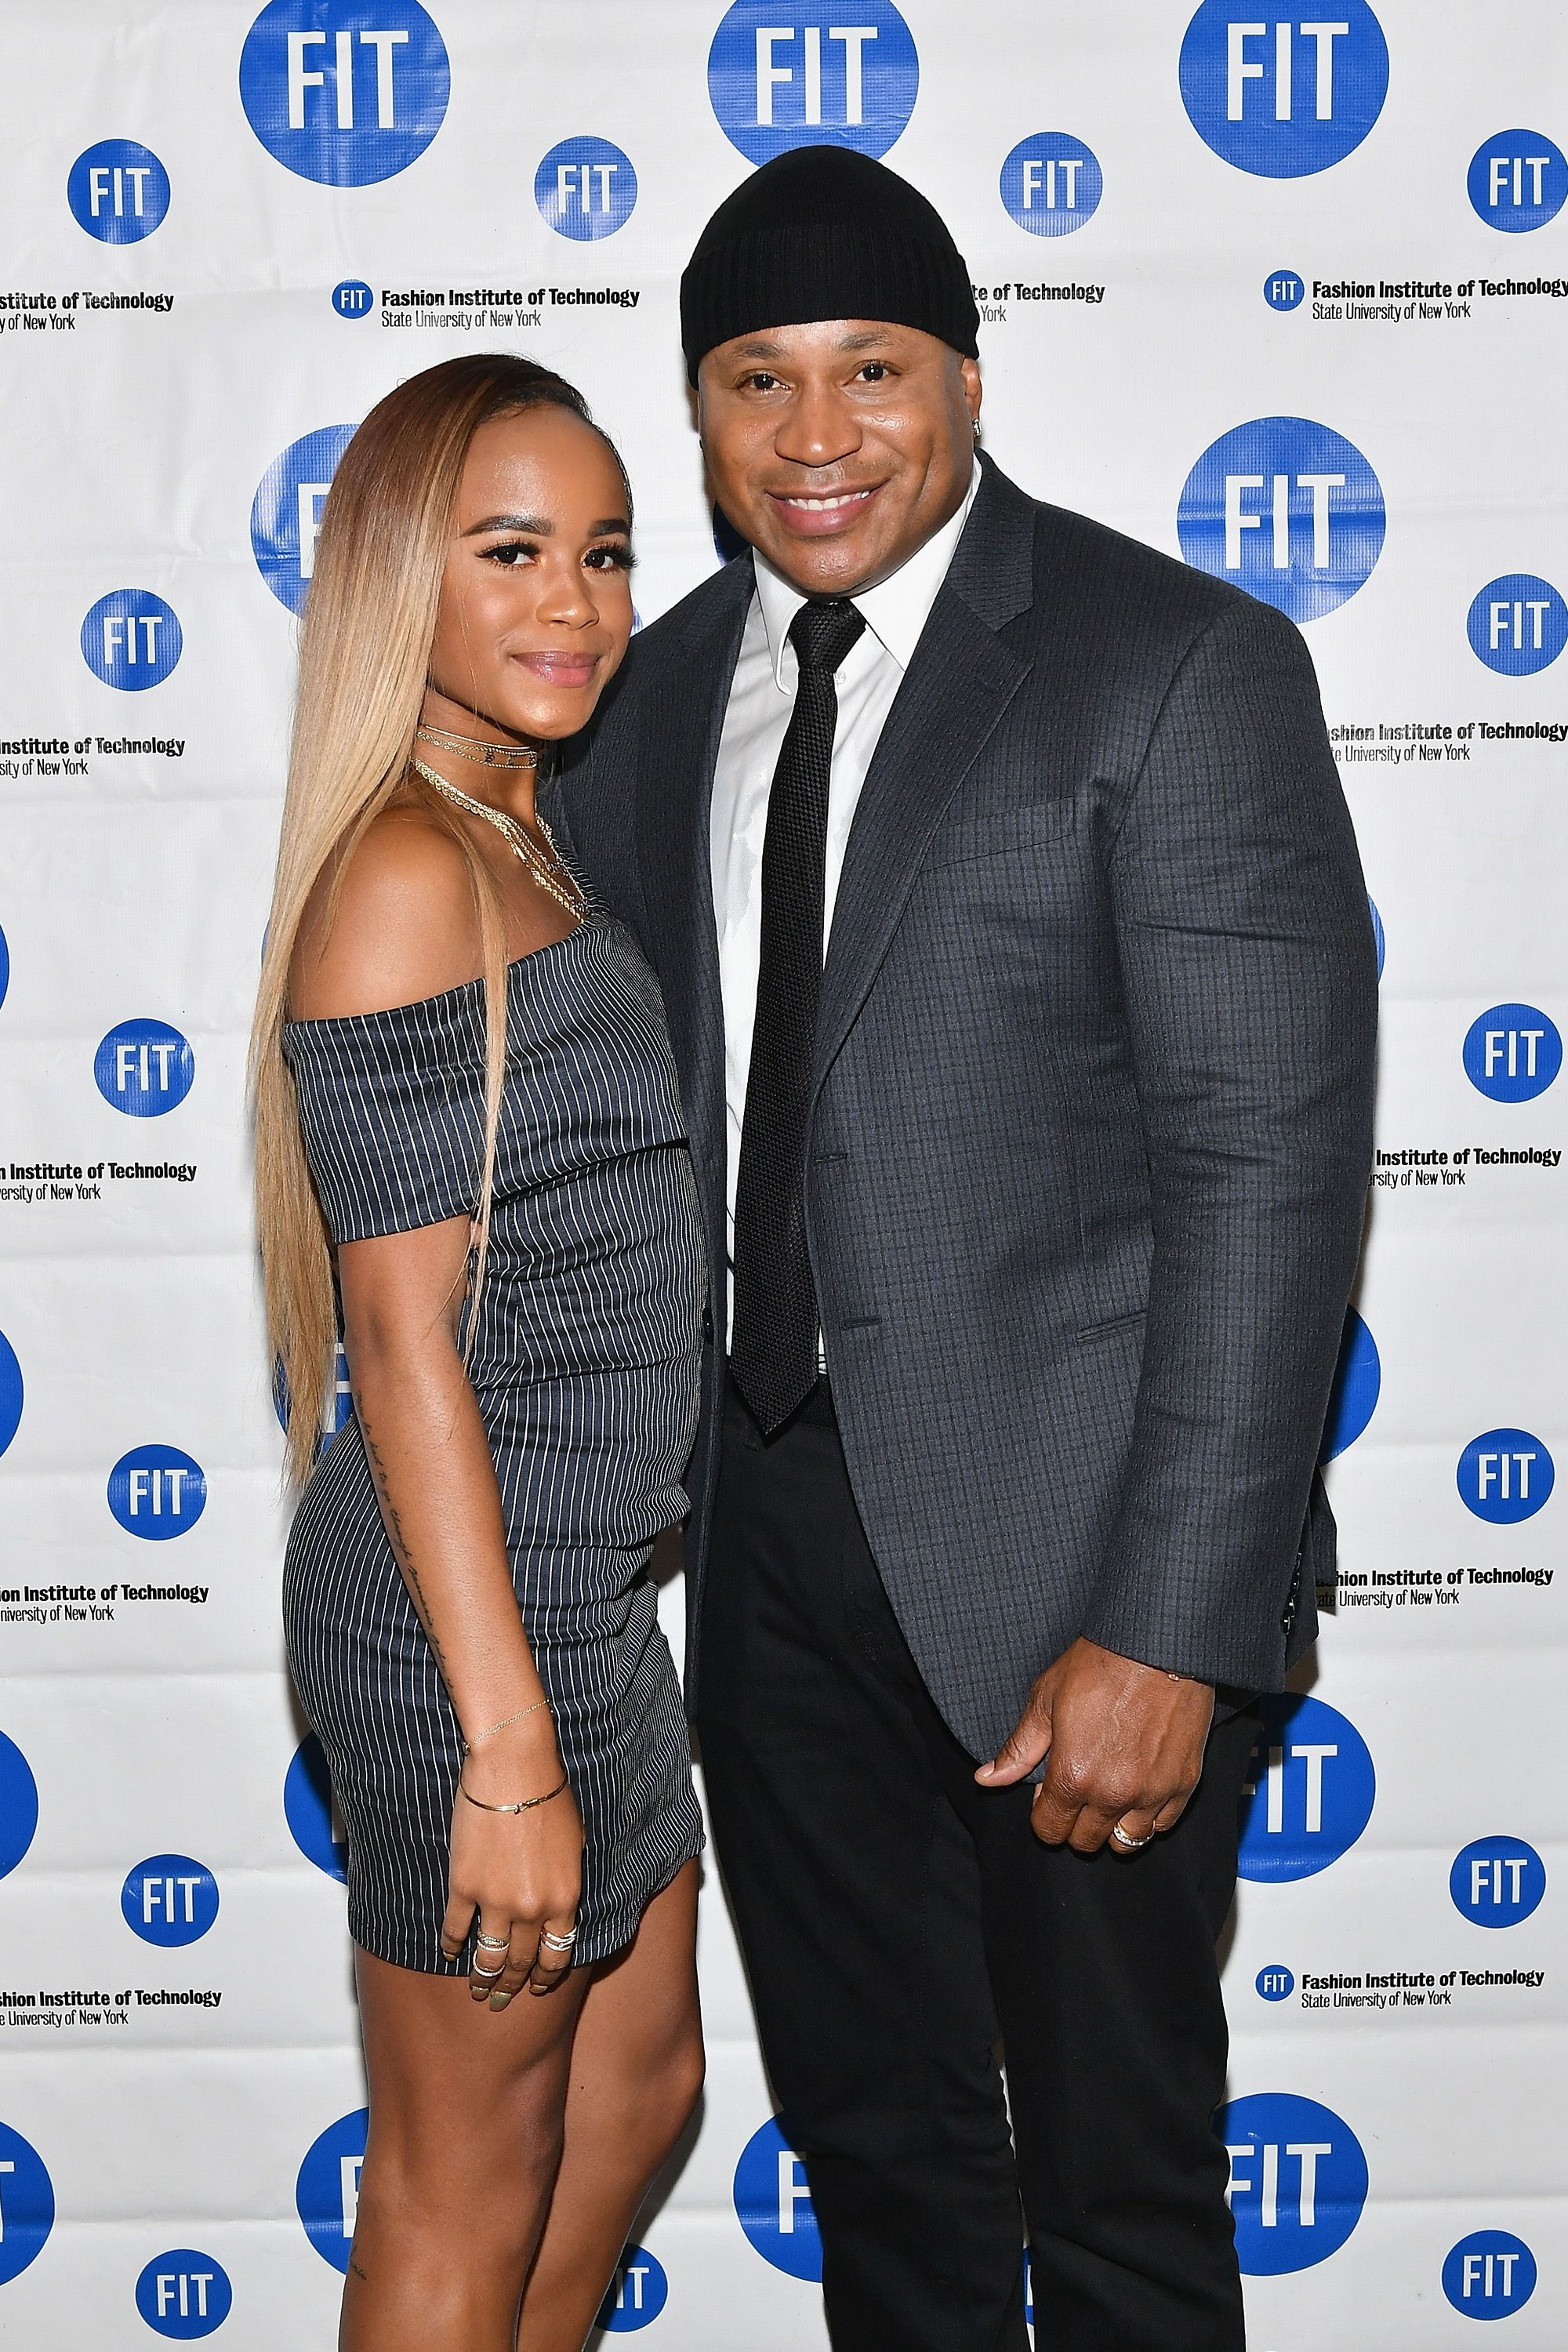 Samaria Leah Smith and LL Cool J at the FIT's 2017 Commencement Ceremony on May 25, 2017 | Photo: Getty Images